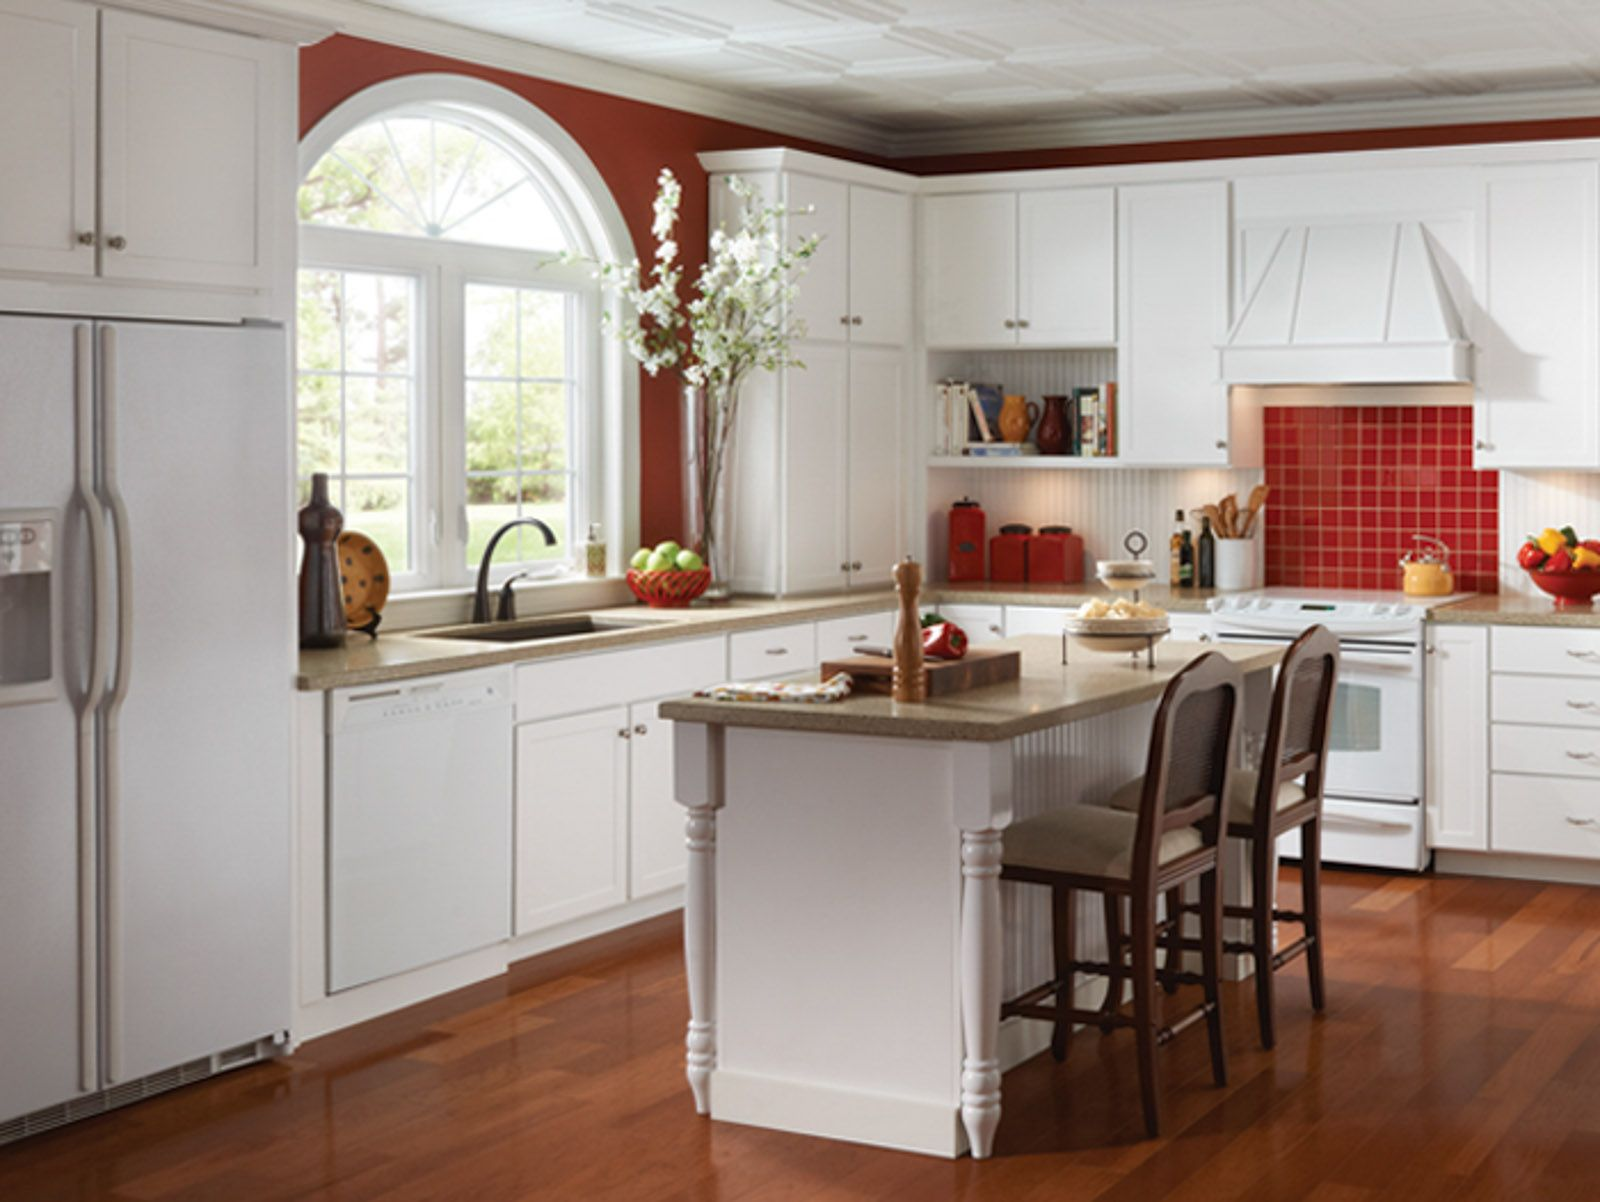 Red Tile And Stylish Marianna Cabinets From Echelon Are A Good Match Kitchen Decor Thermofoil Kitchen Cabinets Kitchen Makeover